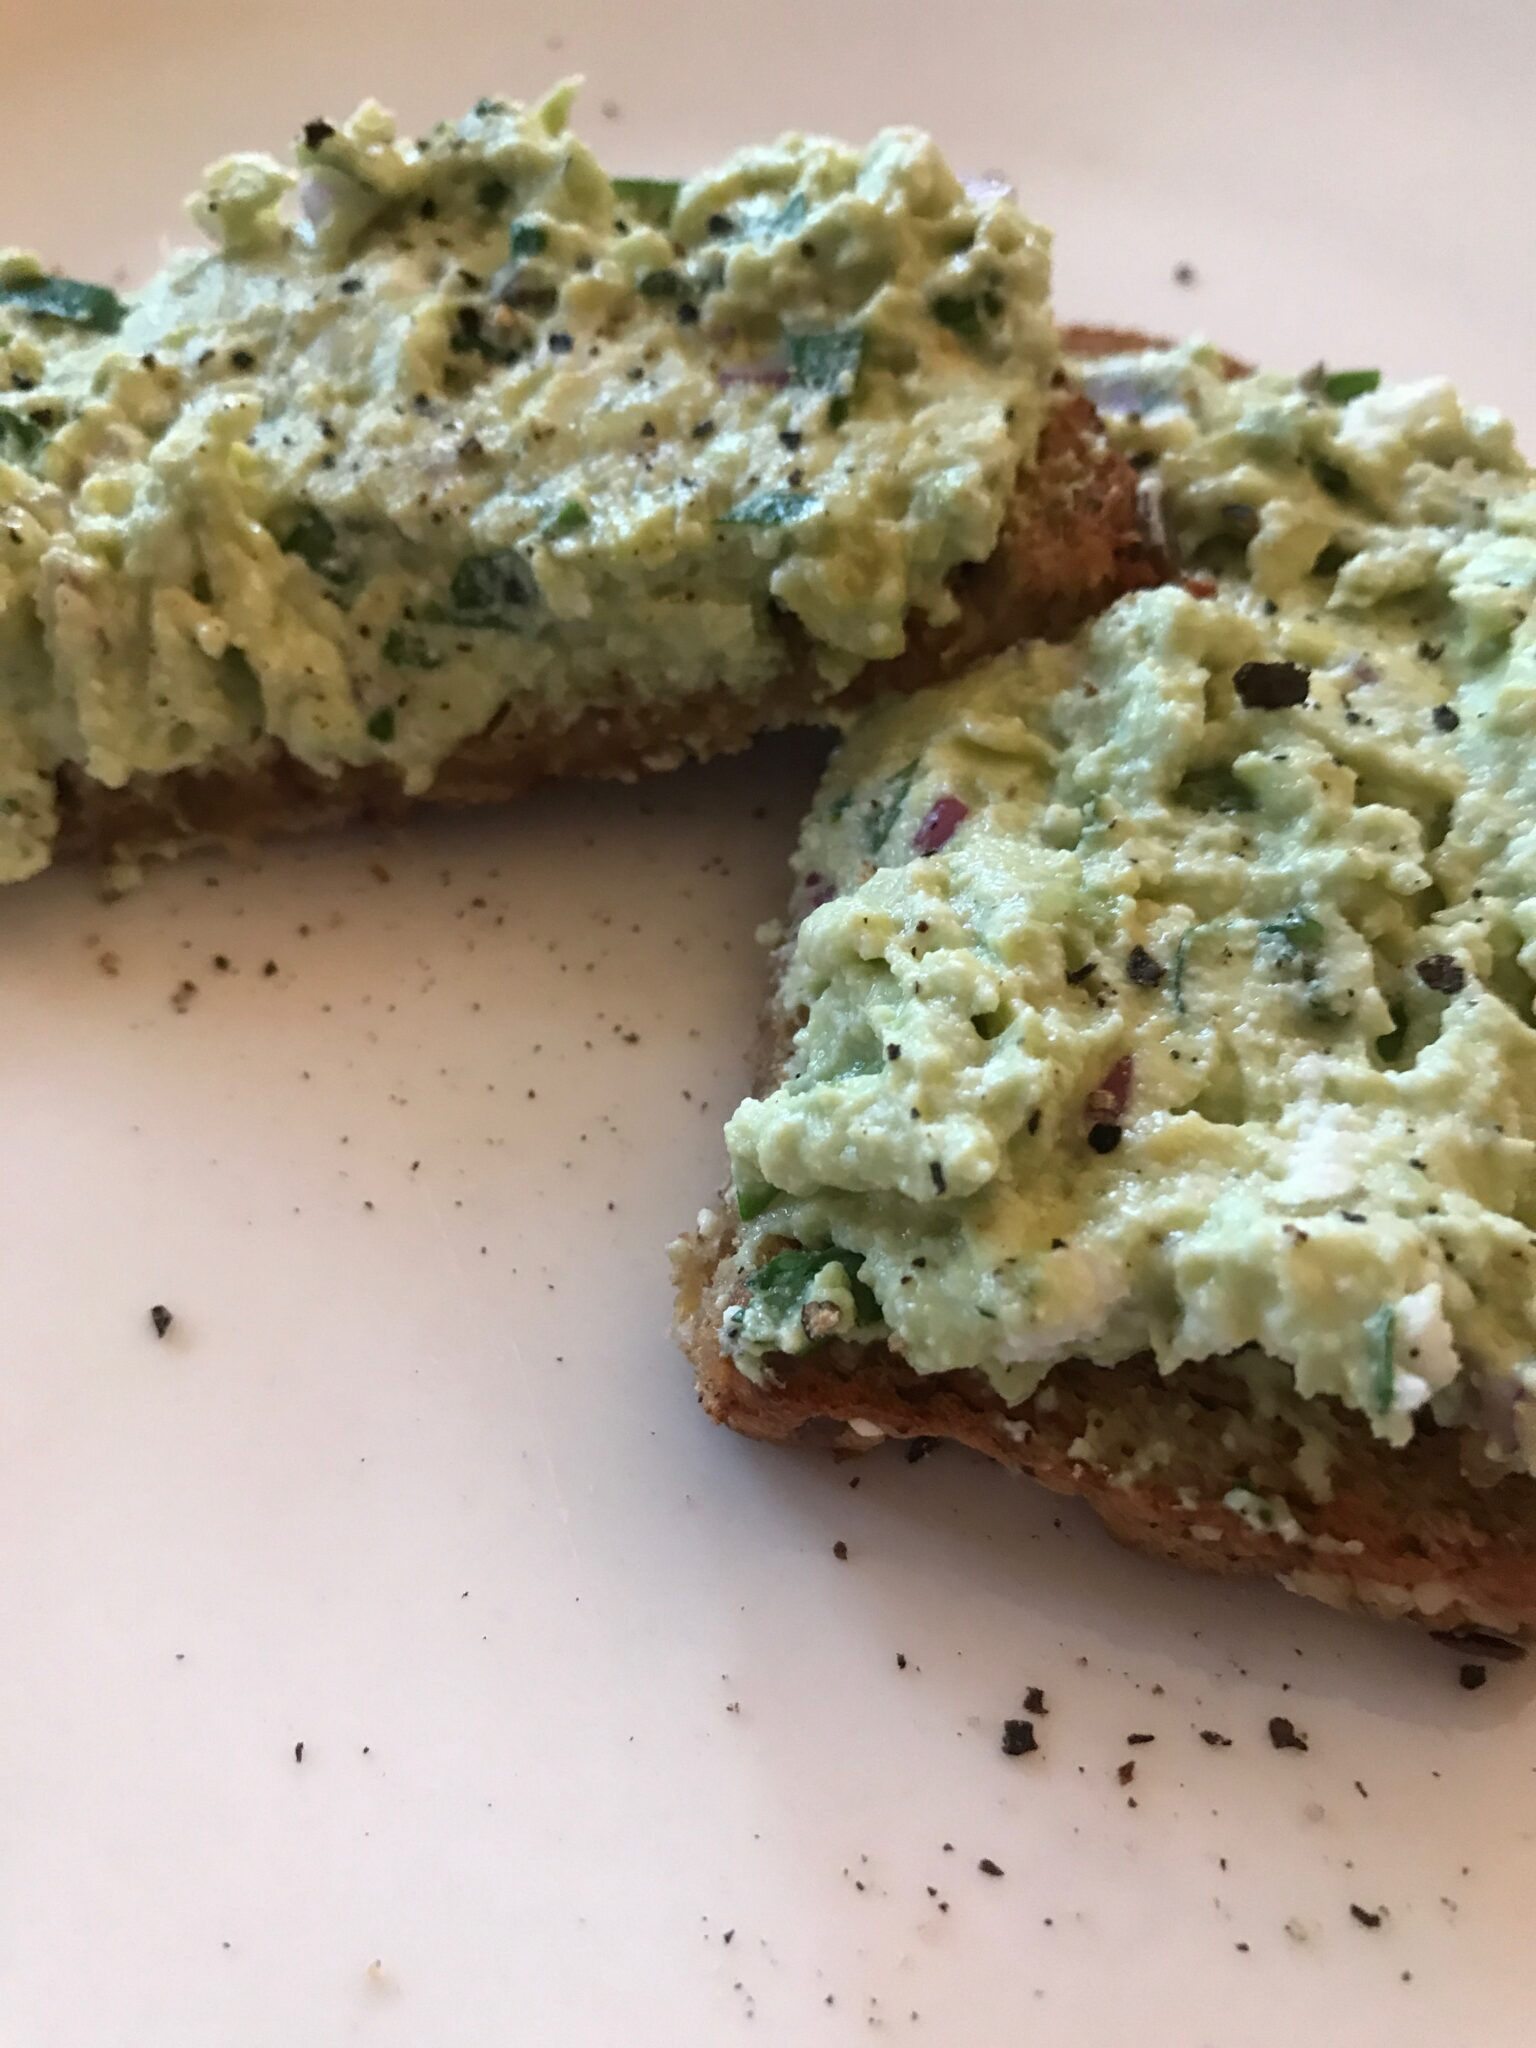 Trix Is For Kids. Make Avocado Ricotta Toast Instead.